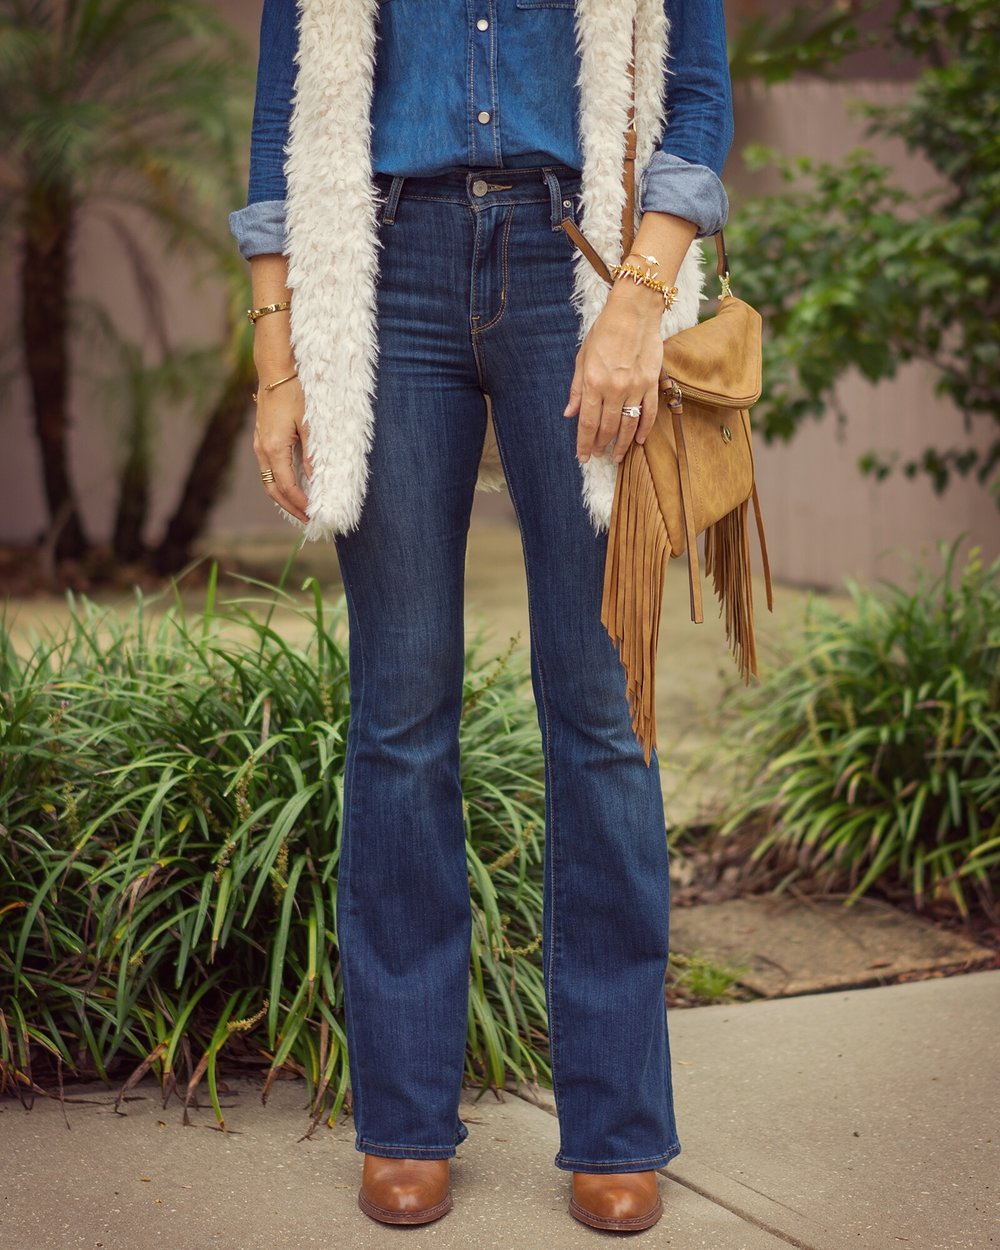 Fuzzy vest, chambray shirt, flare jeans